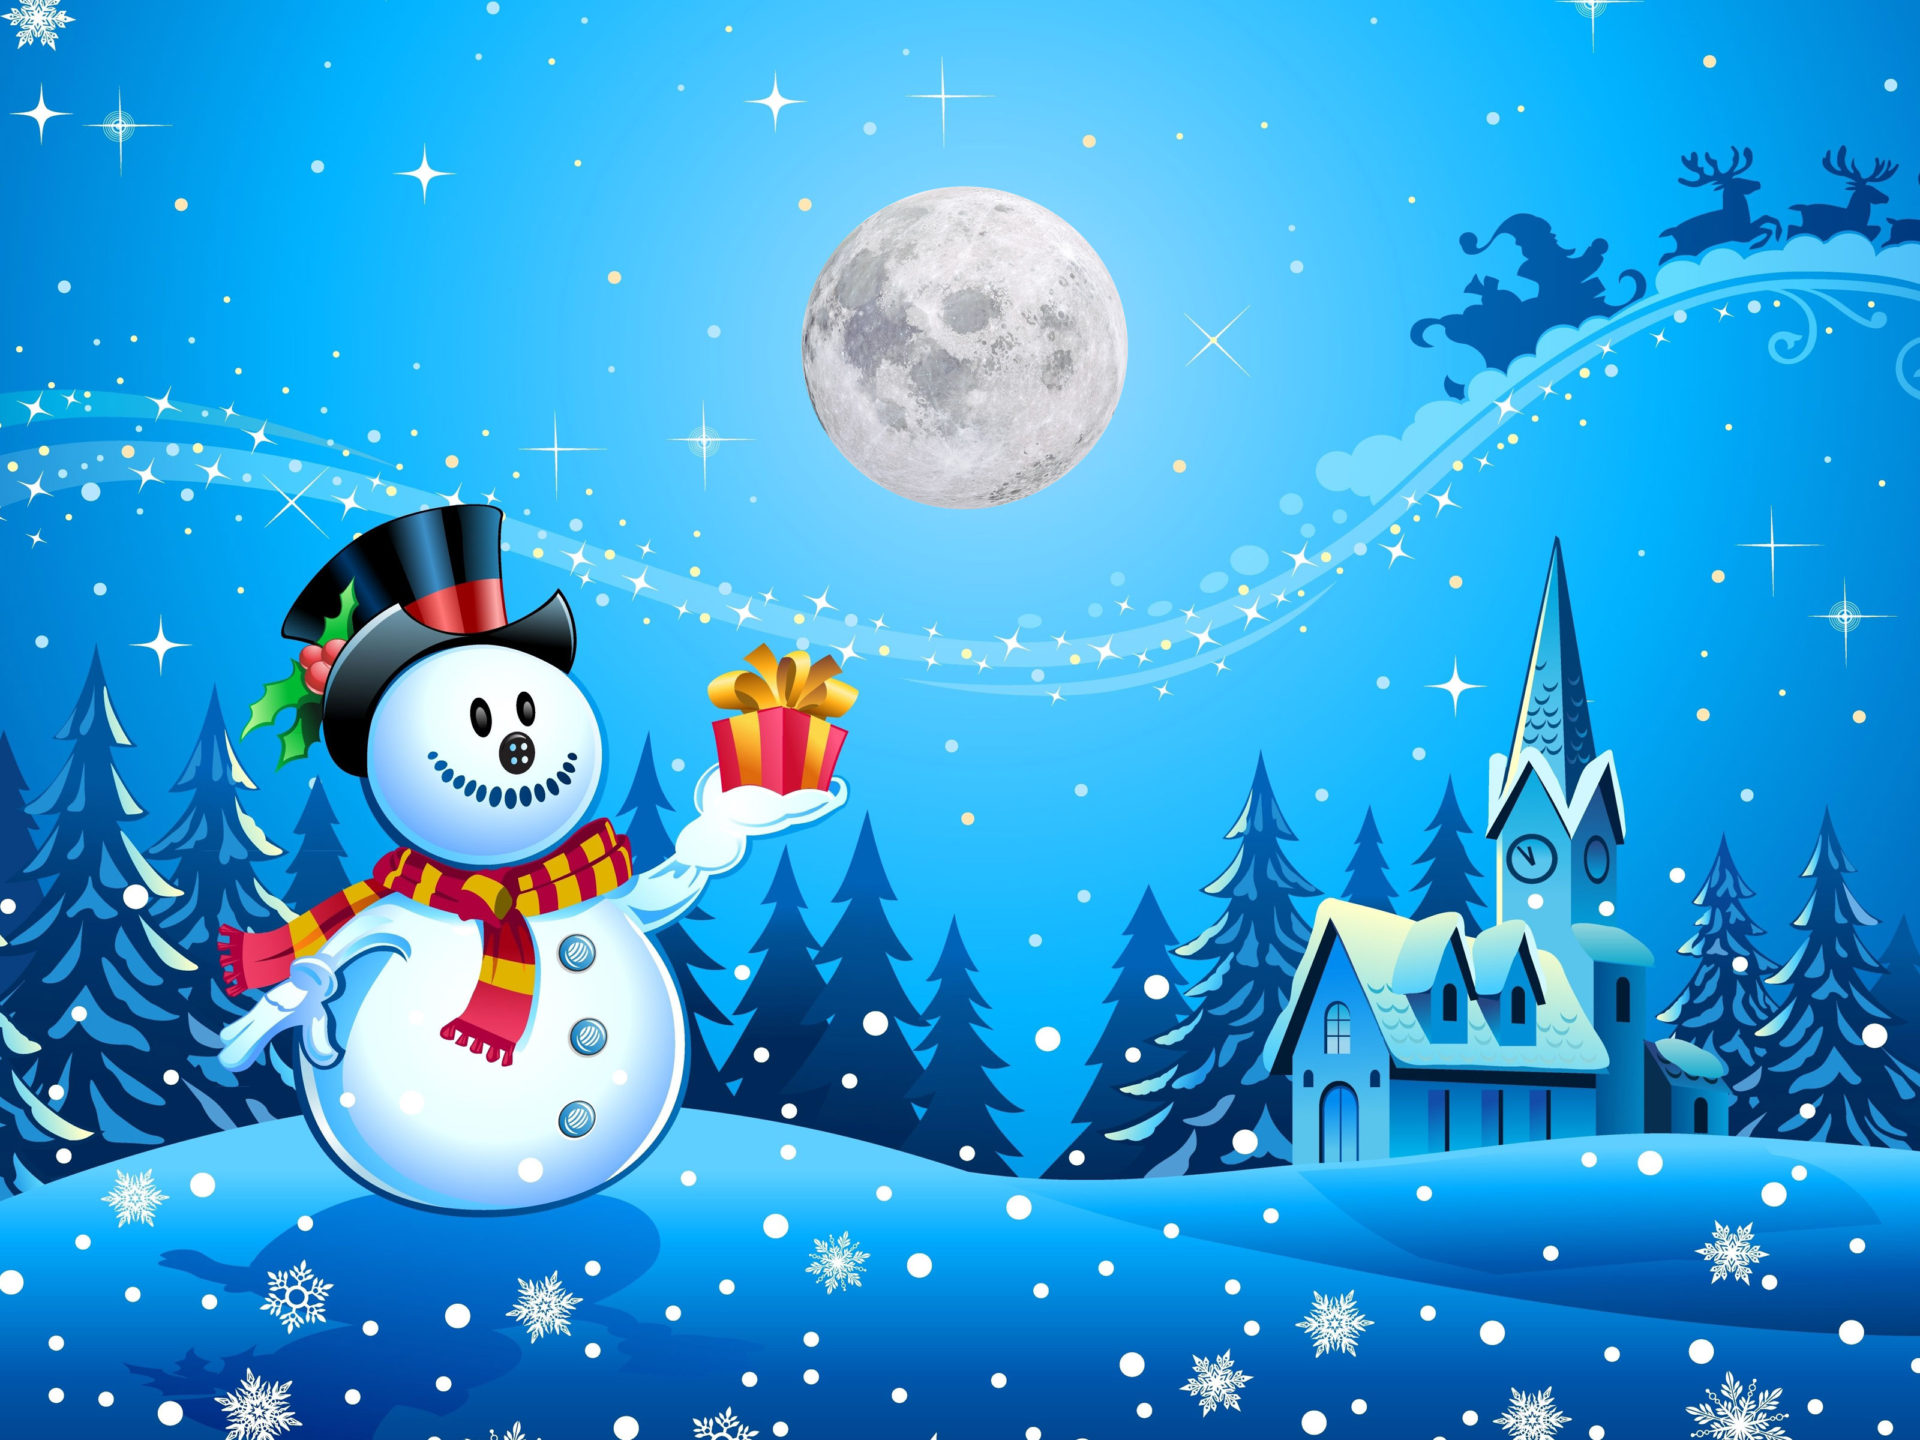 Winter Wonderland Iphone Wallpaper Christmas Snowman Happy Holiday For Kids Electronic Card